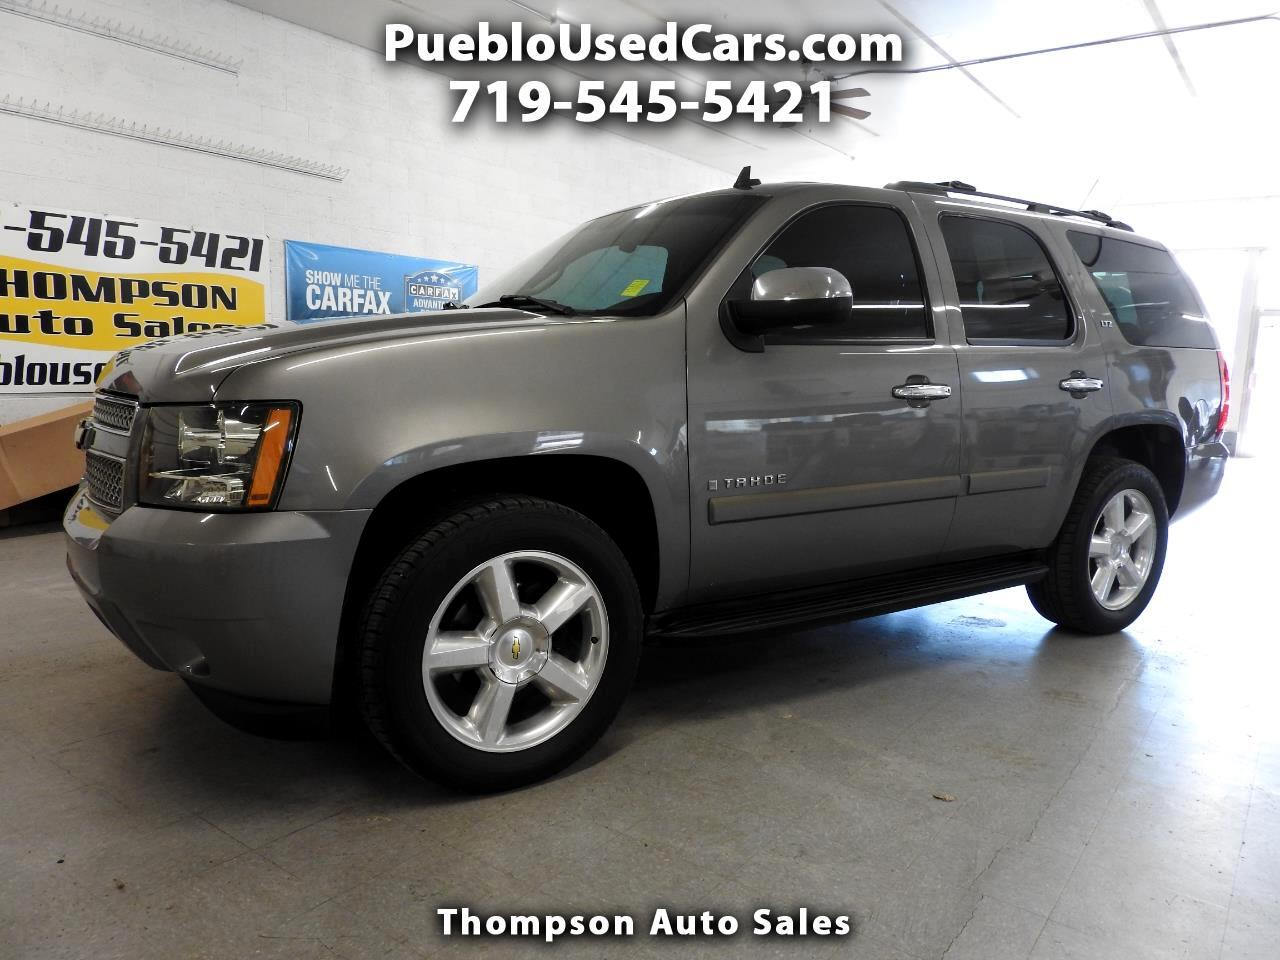 Cars Com Used Cars >> Used Cars For Sale Pueblo Co 81003 Thompson Auto Sales